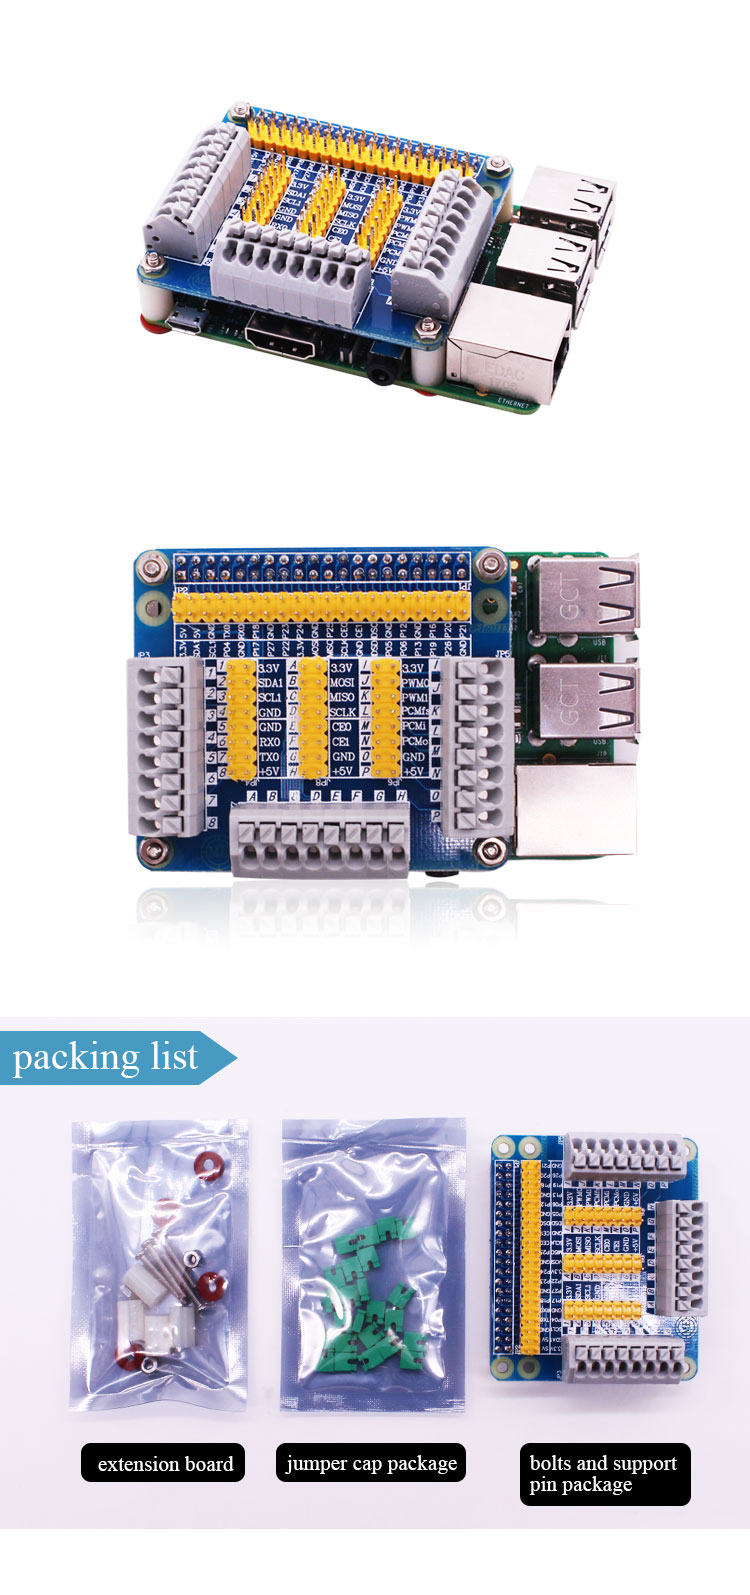 2018 GPIO Extension Board Multifunction Interface Module with screw For Raspberry Pi 3B+ RPi 3B 2 / 3 Model B PC Banana Pi M3